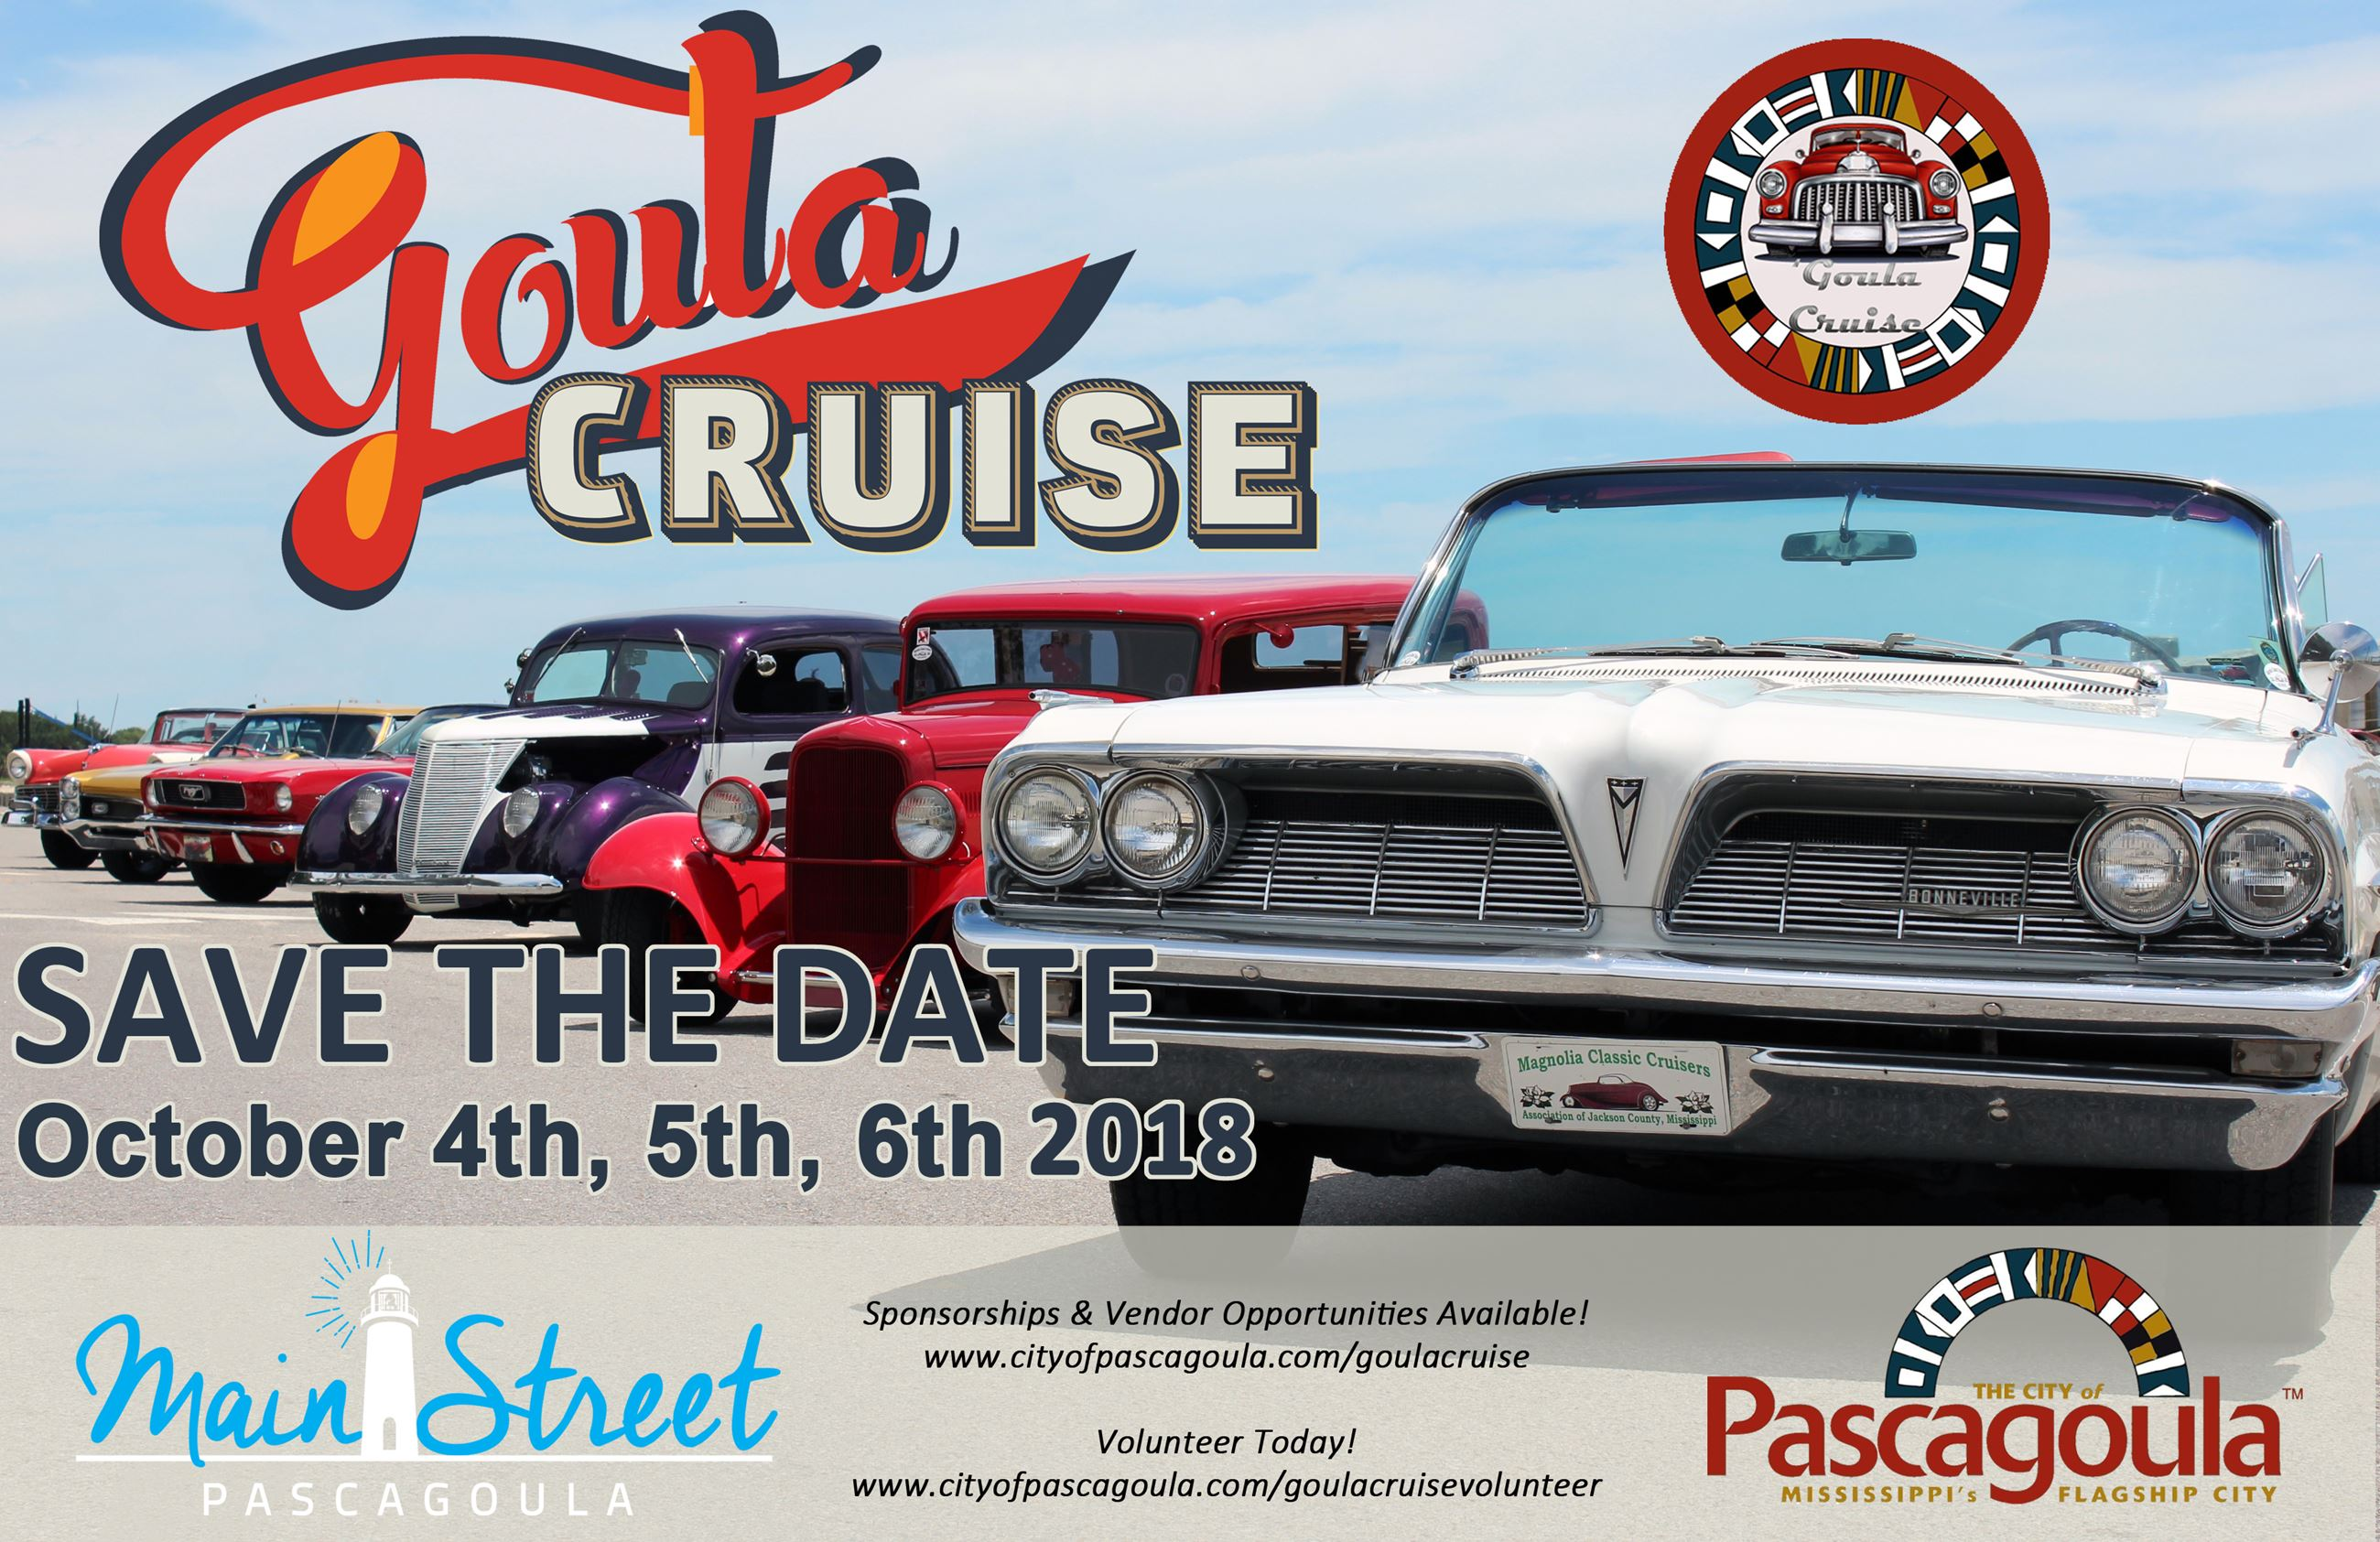 Goula Cruise save the date